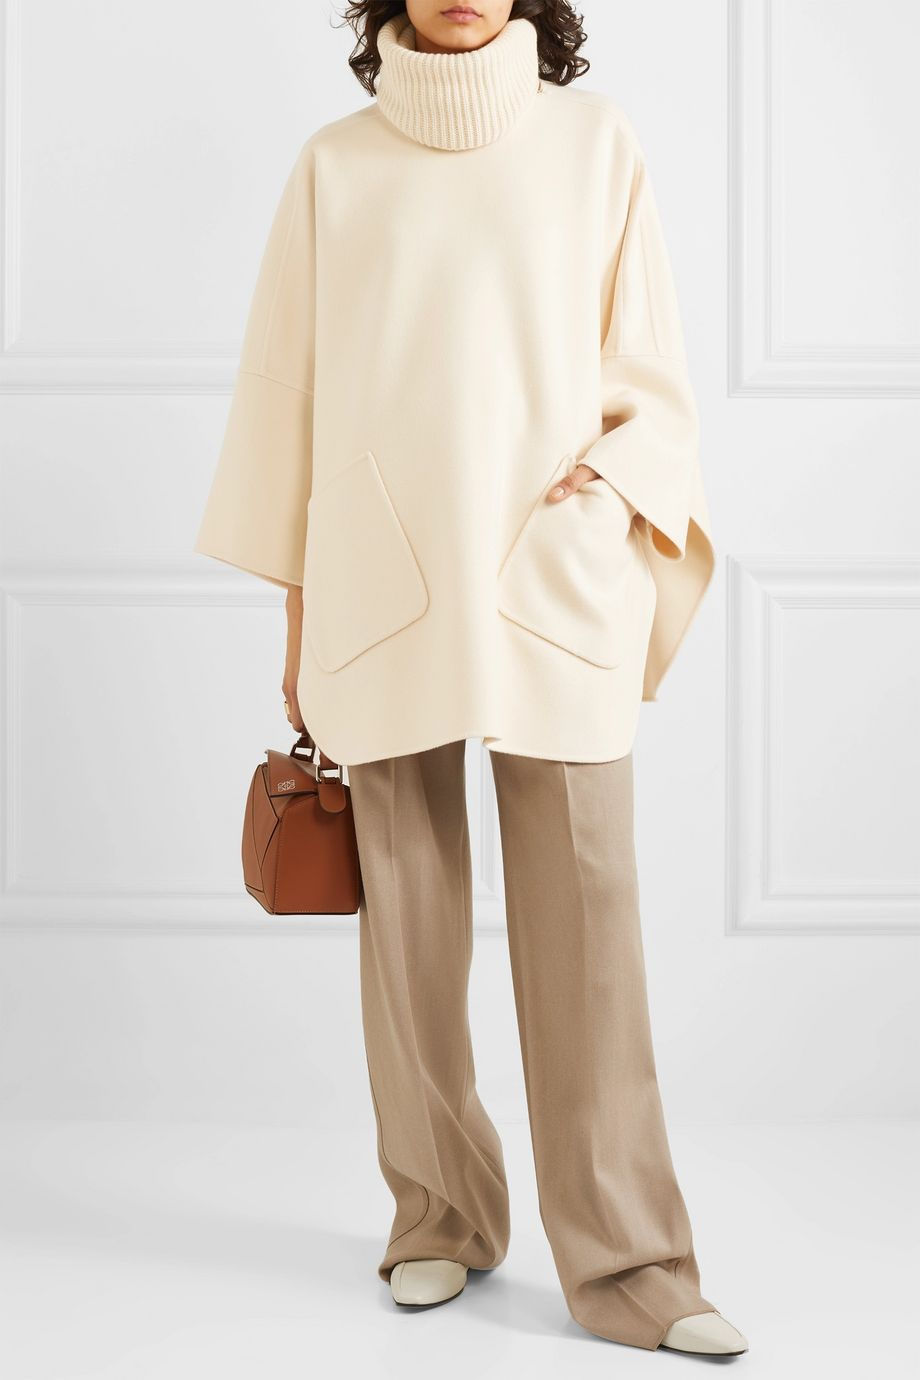 Loro Piana Convertible cashmere turtleneck cape